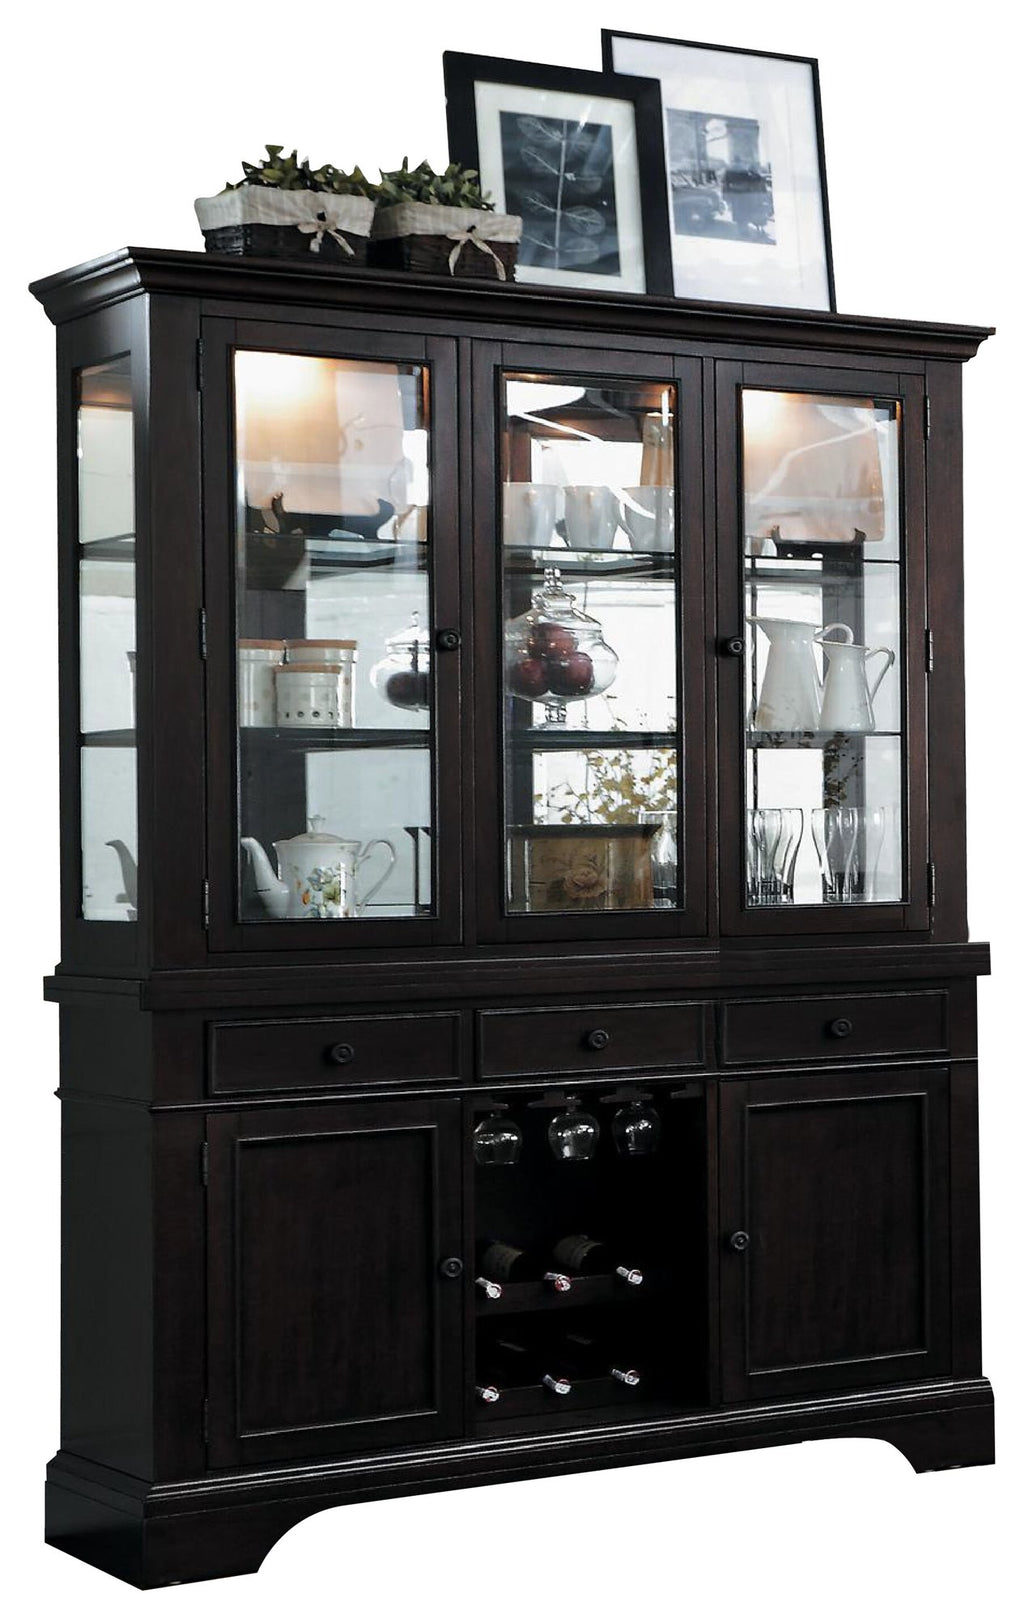 Homelegance Reid Buffet & Hutch in Cherry